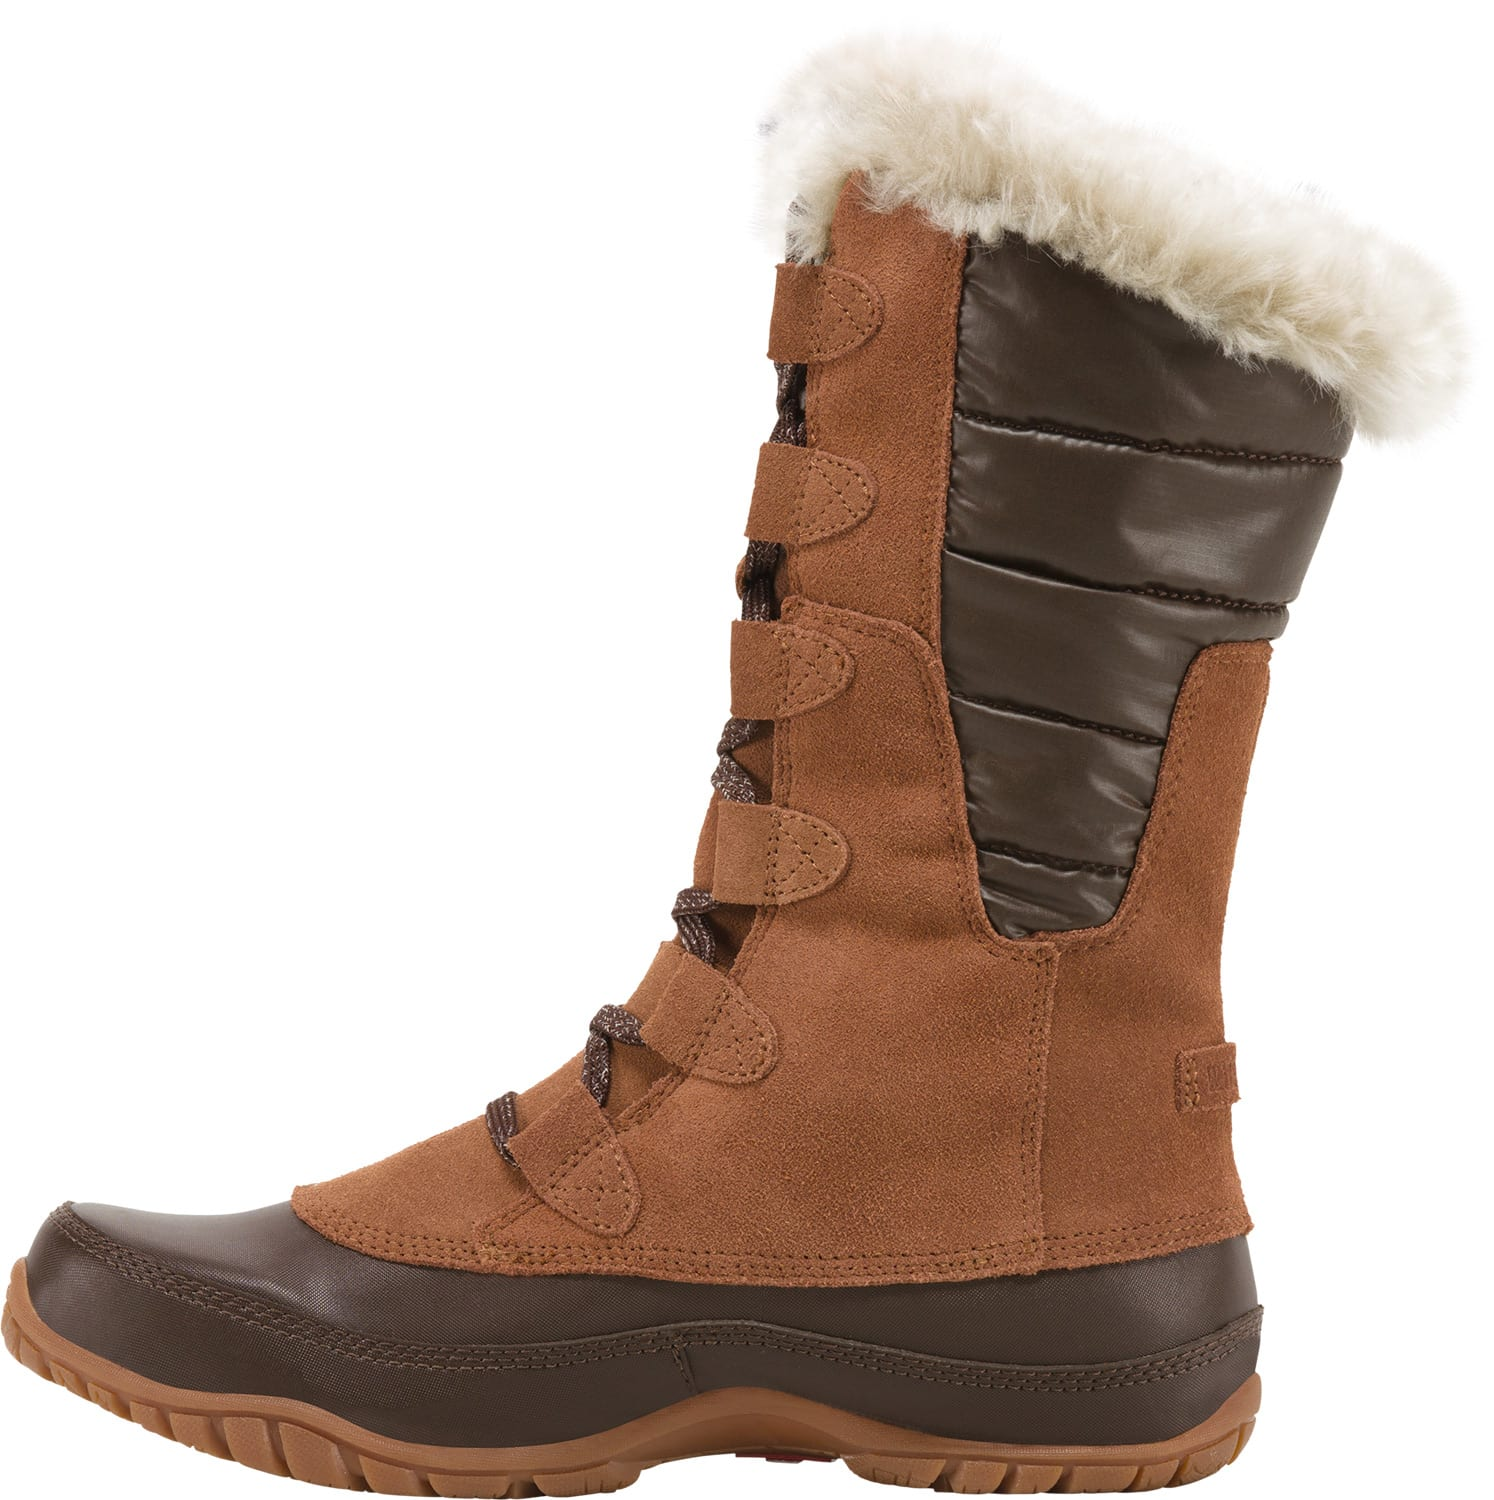 On Sale The North Face Nuptse Purna Boots - Womens up to 50% off